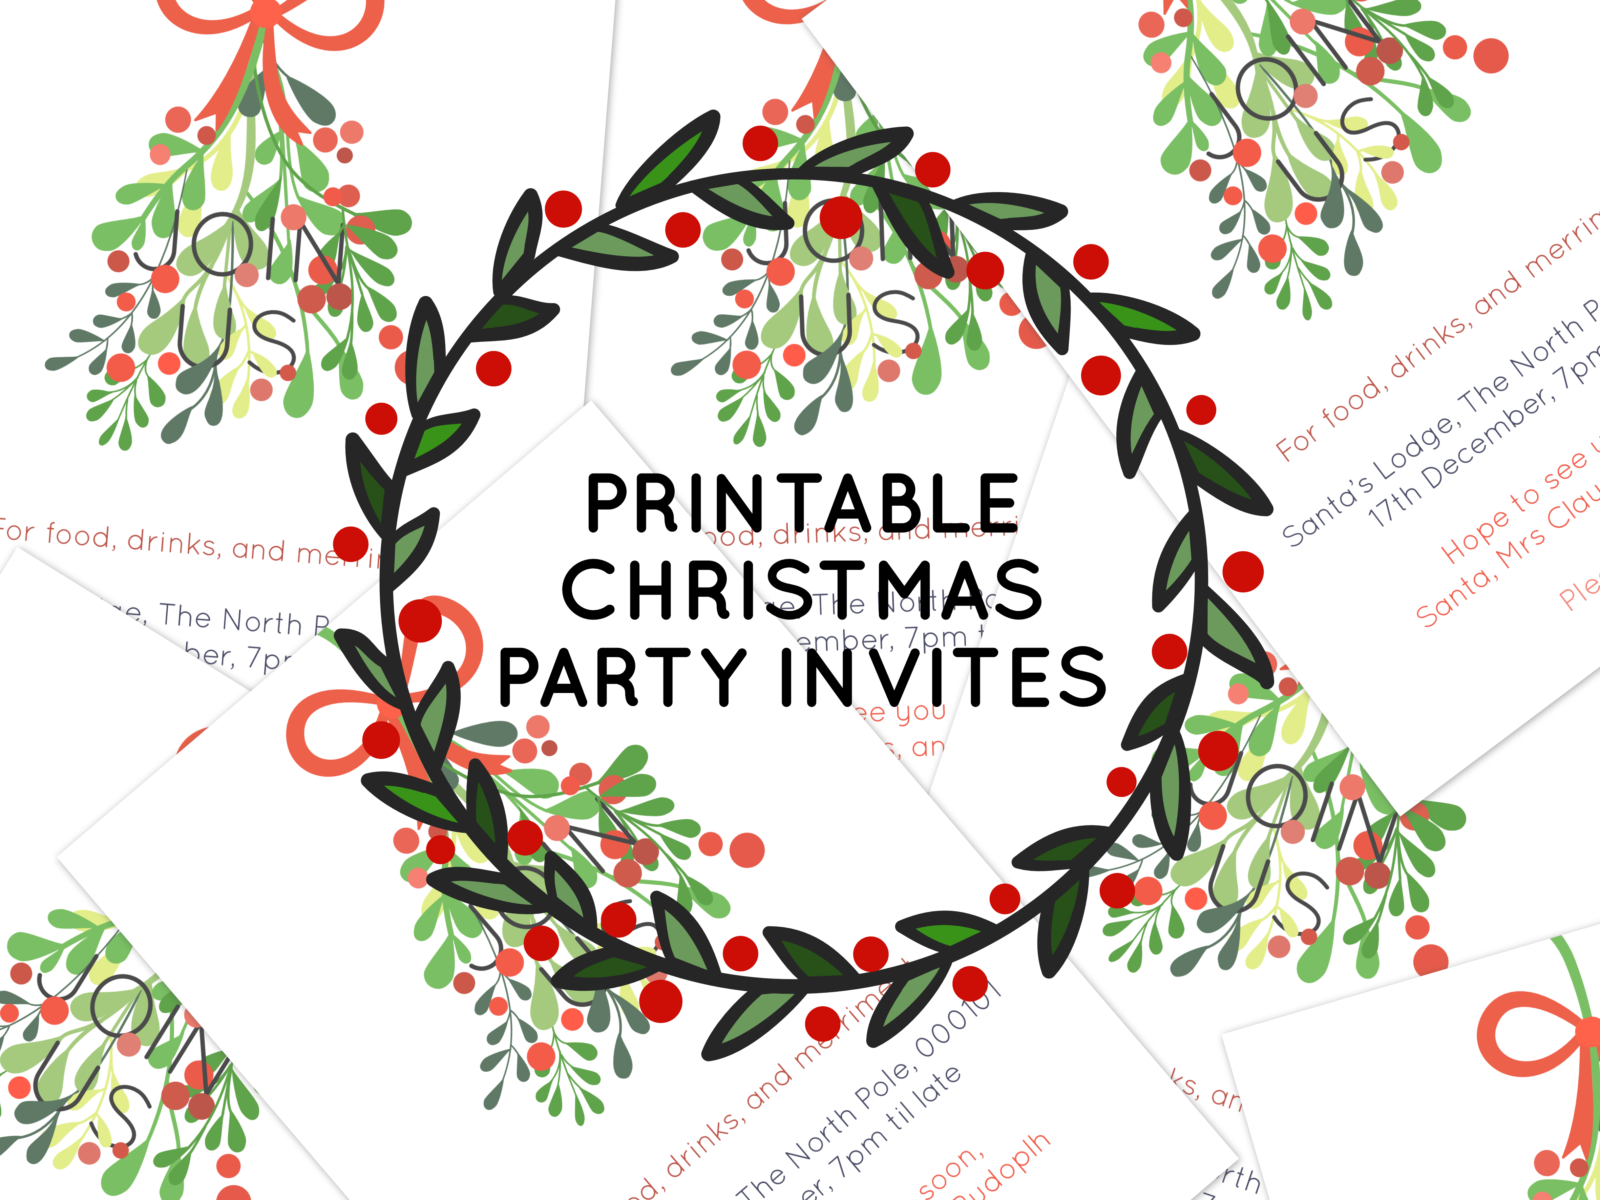 photo regarding Printable Christmas Invitations identify Free of charge Printable Xmas Celebration Invitations Effort In excess of Very simple